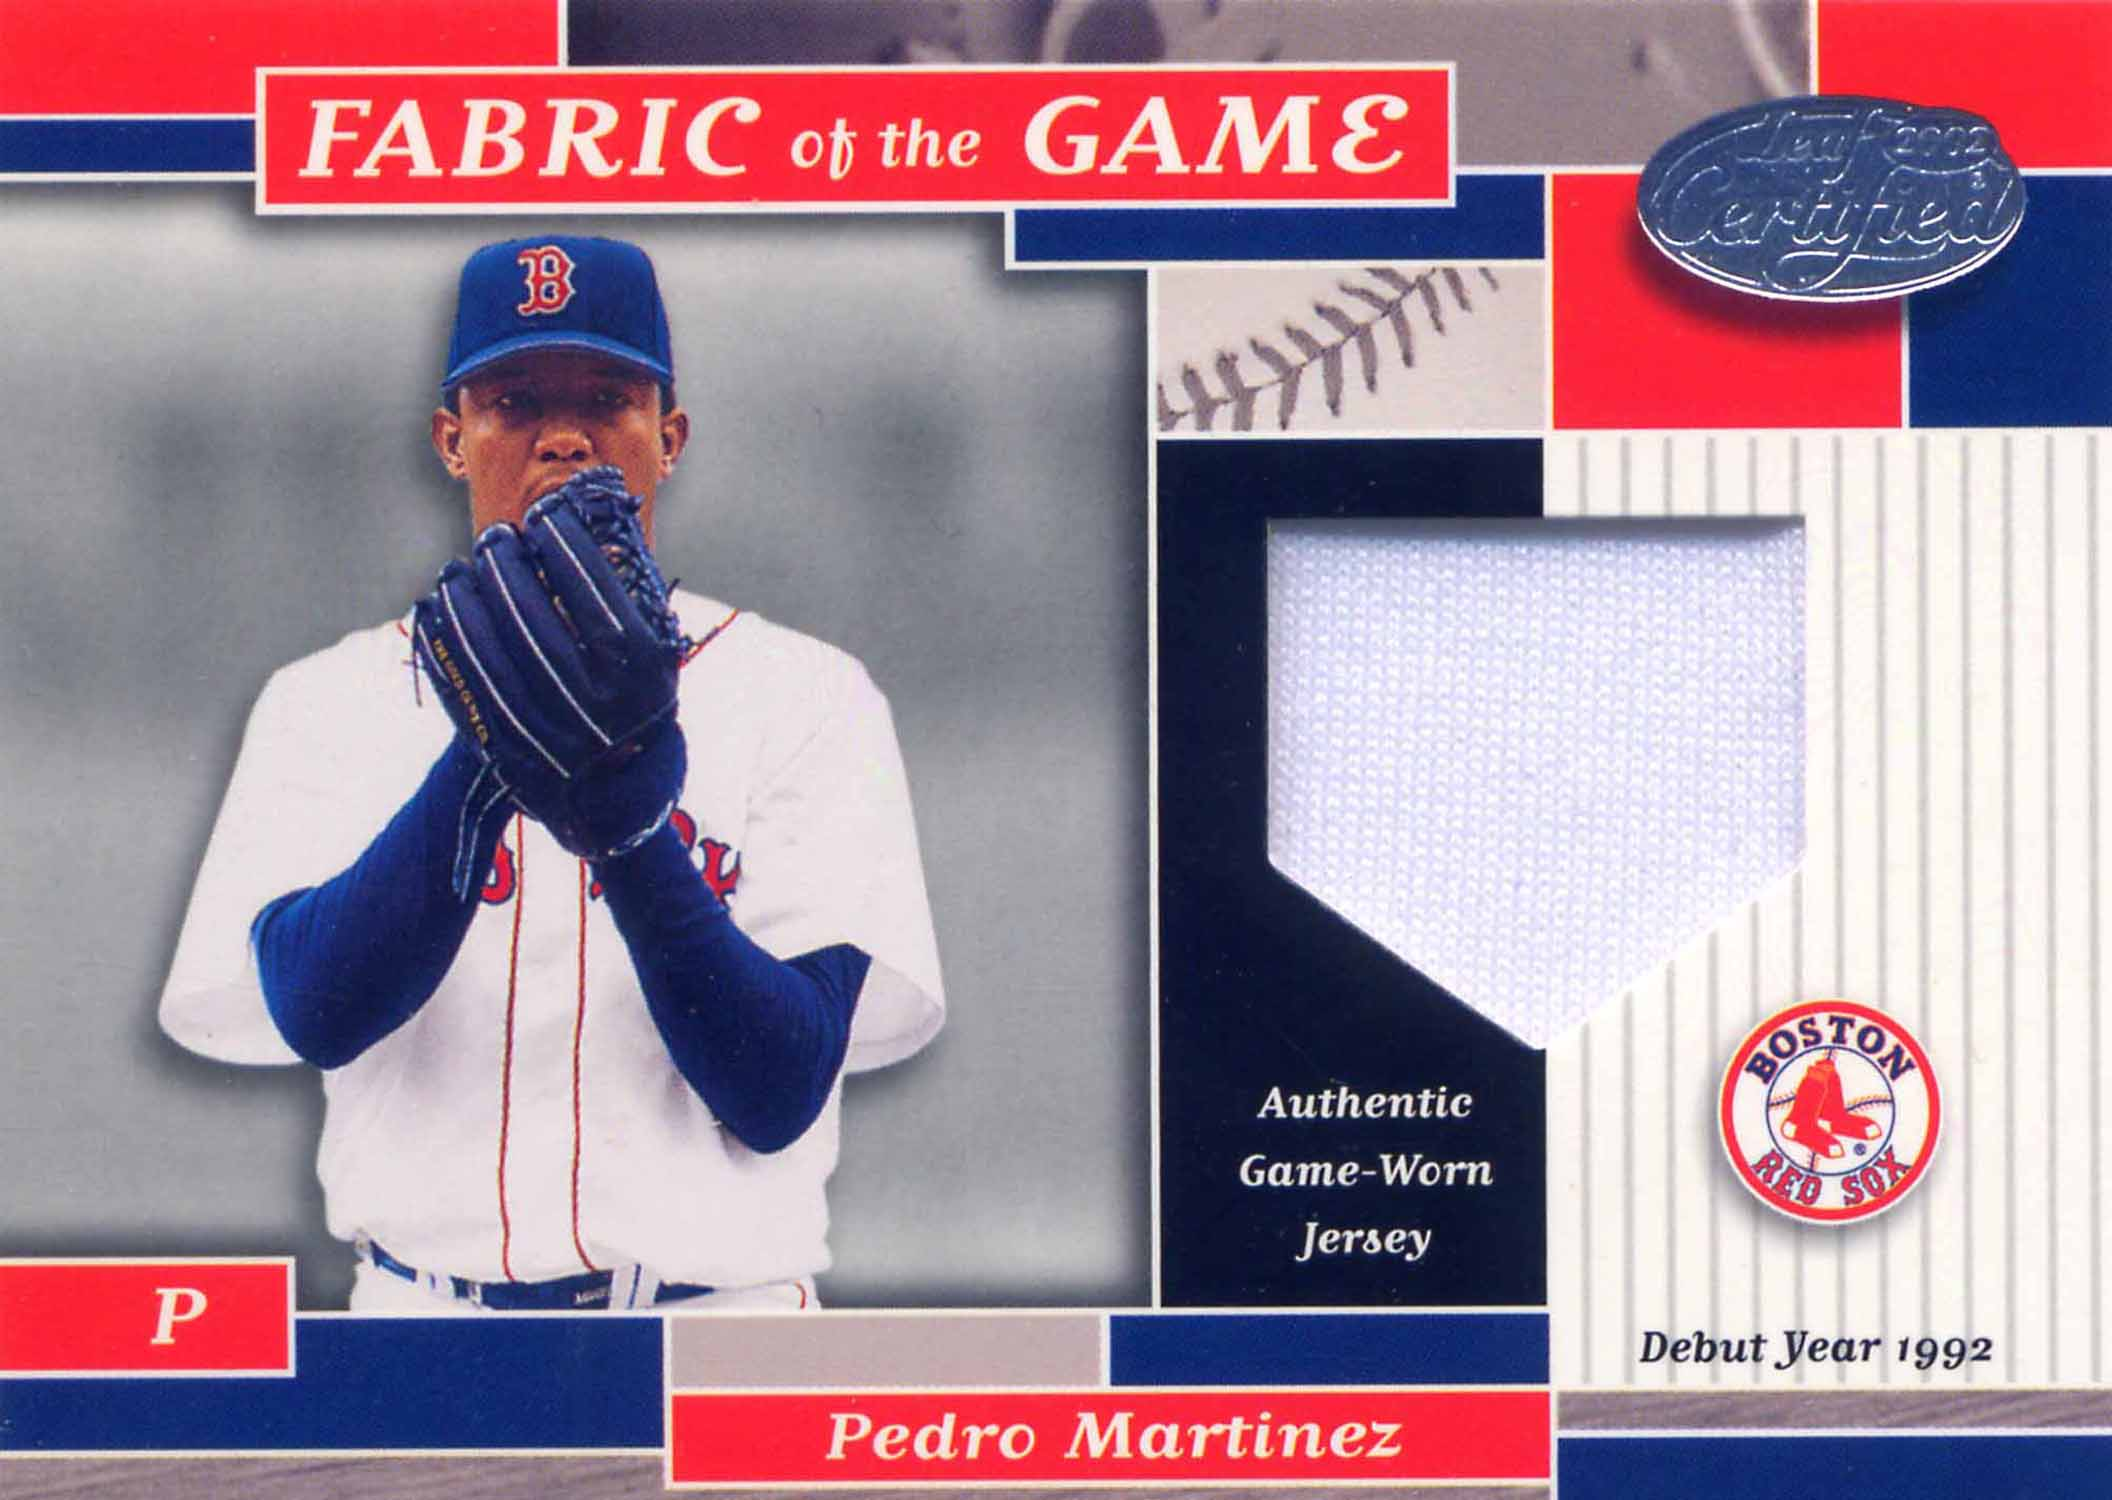 2002 Leaf Certified Fabric of the Game